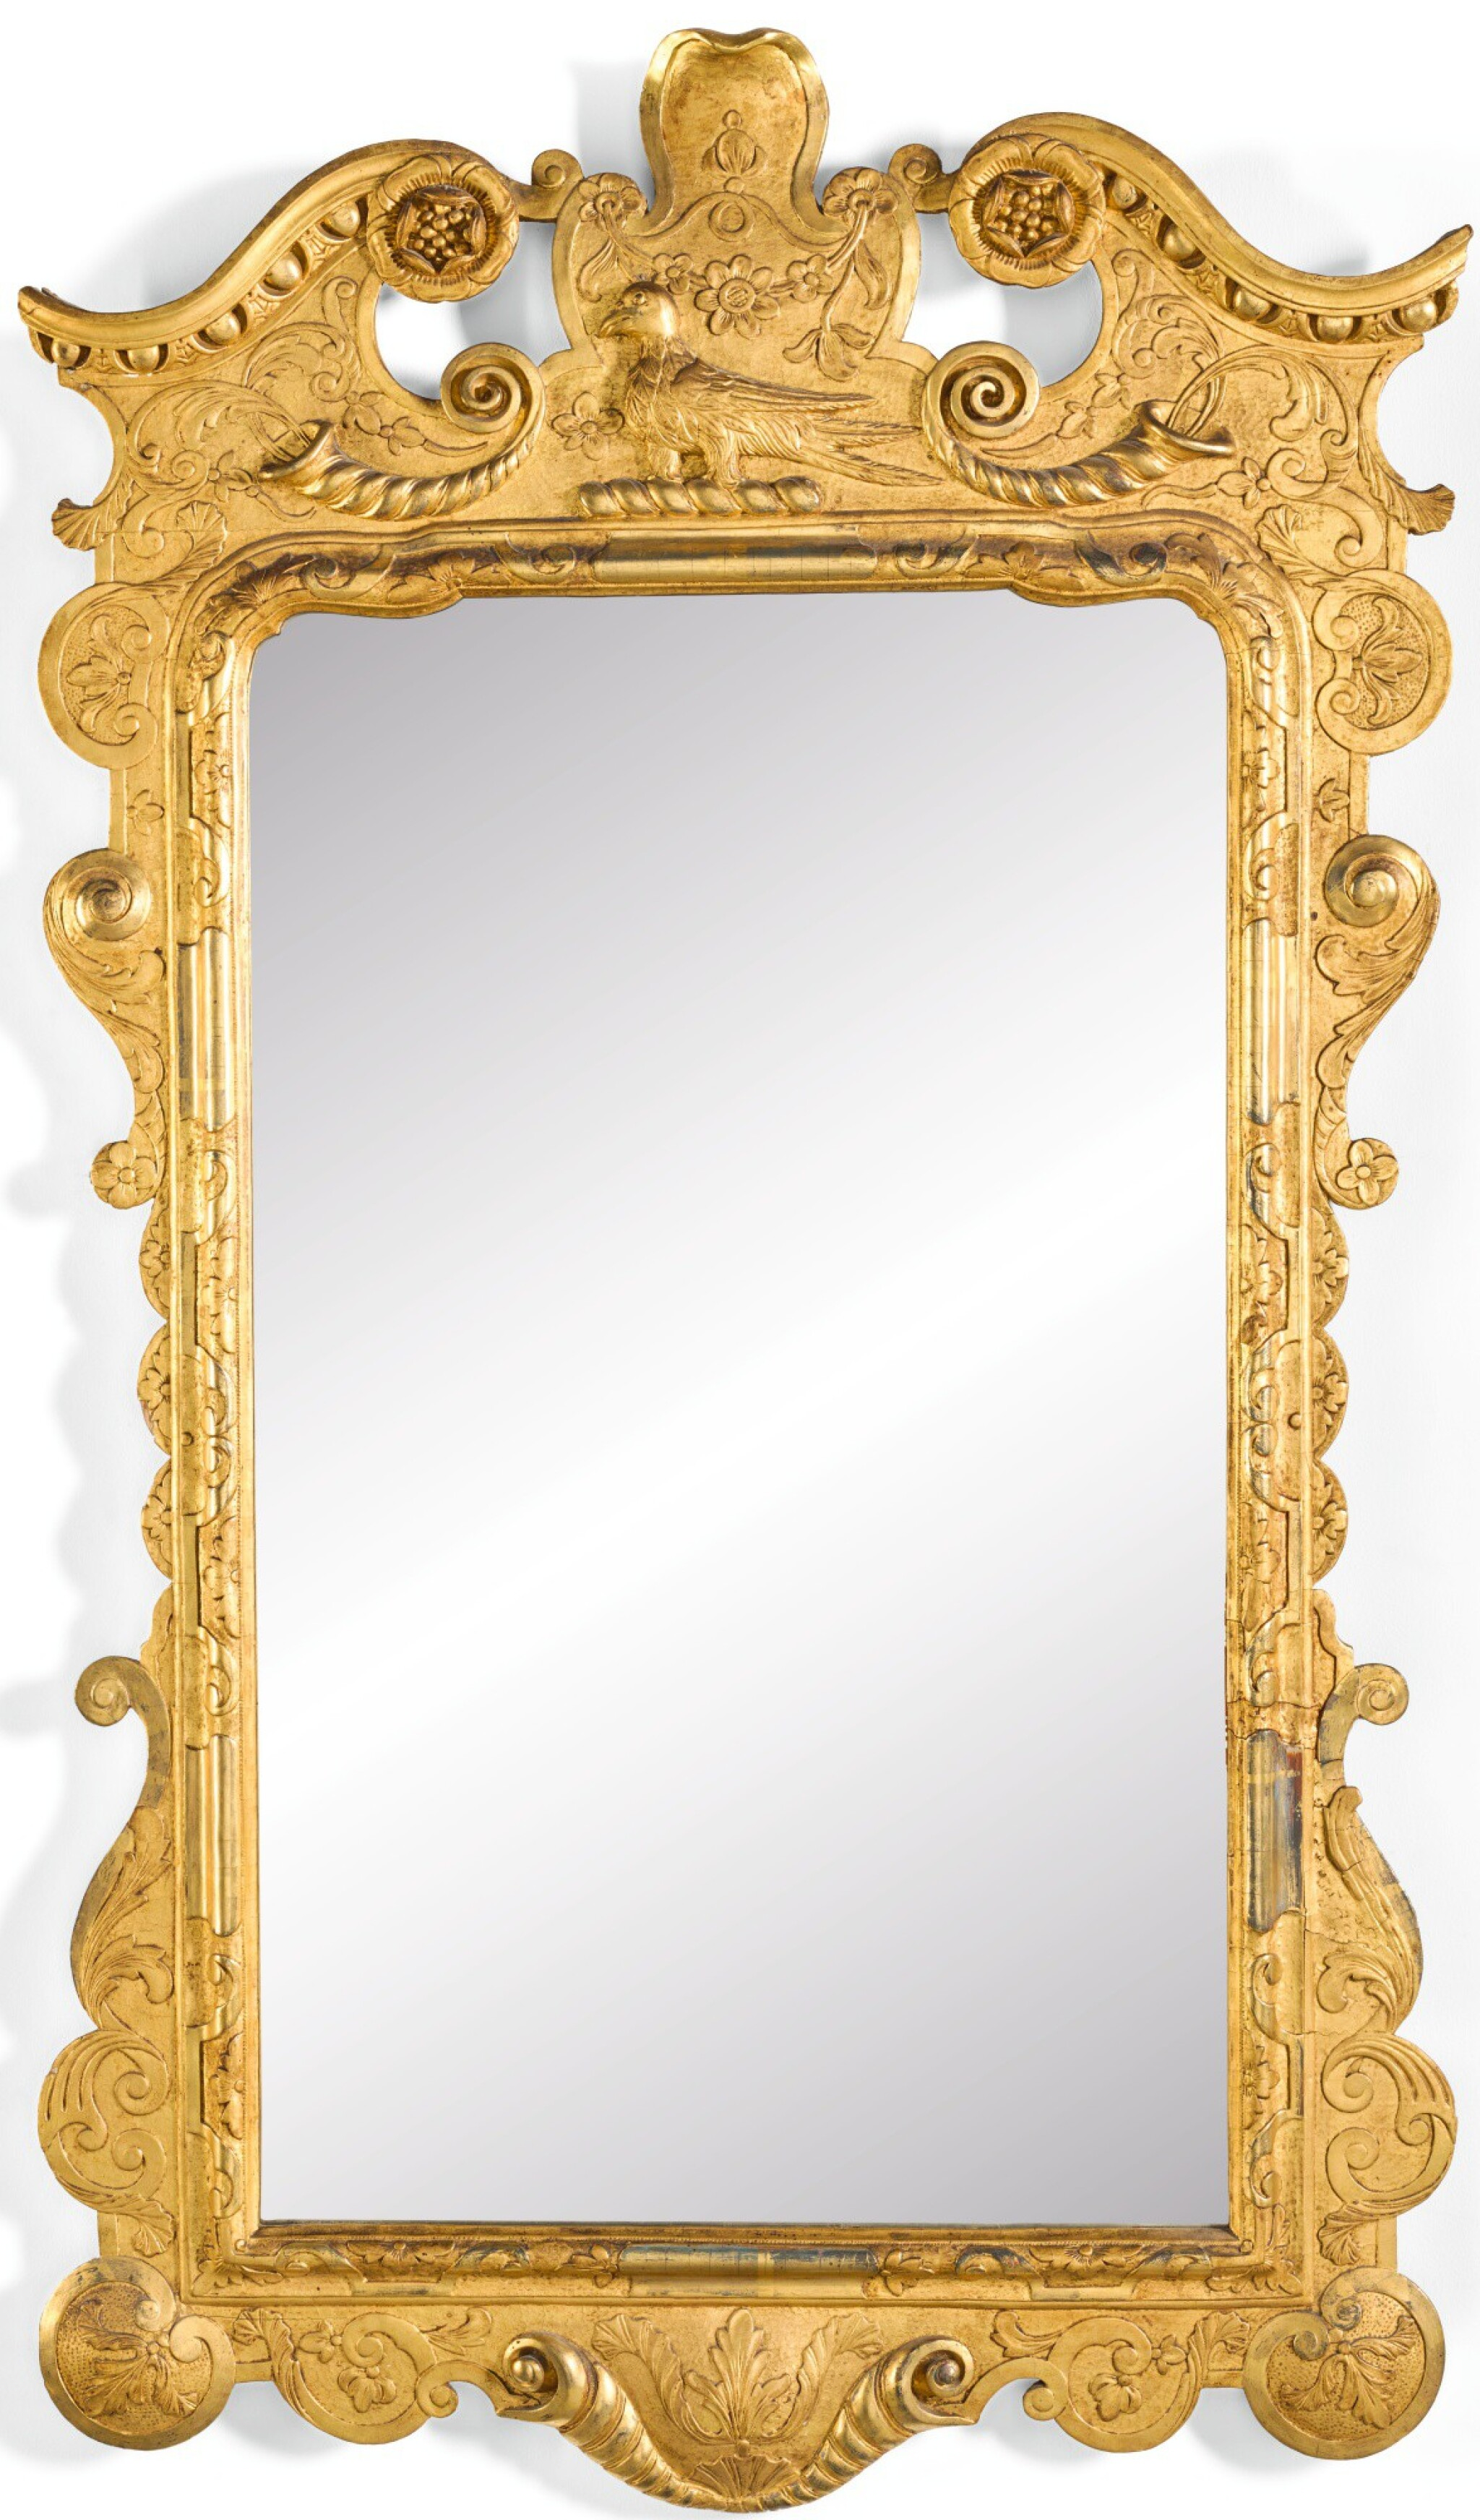 View full screen - View 1 of Lot 51. A PAIR OF IRISH GEORGE II GILTWOOD AND GILT-GESSO PIER GLASSES, CIRCA 1740.